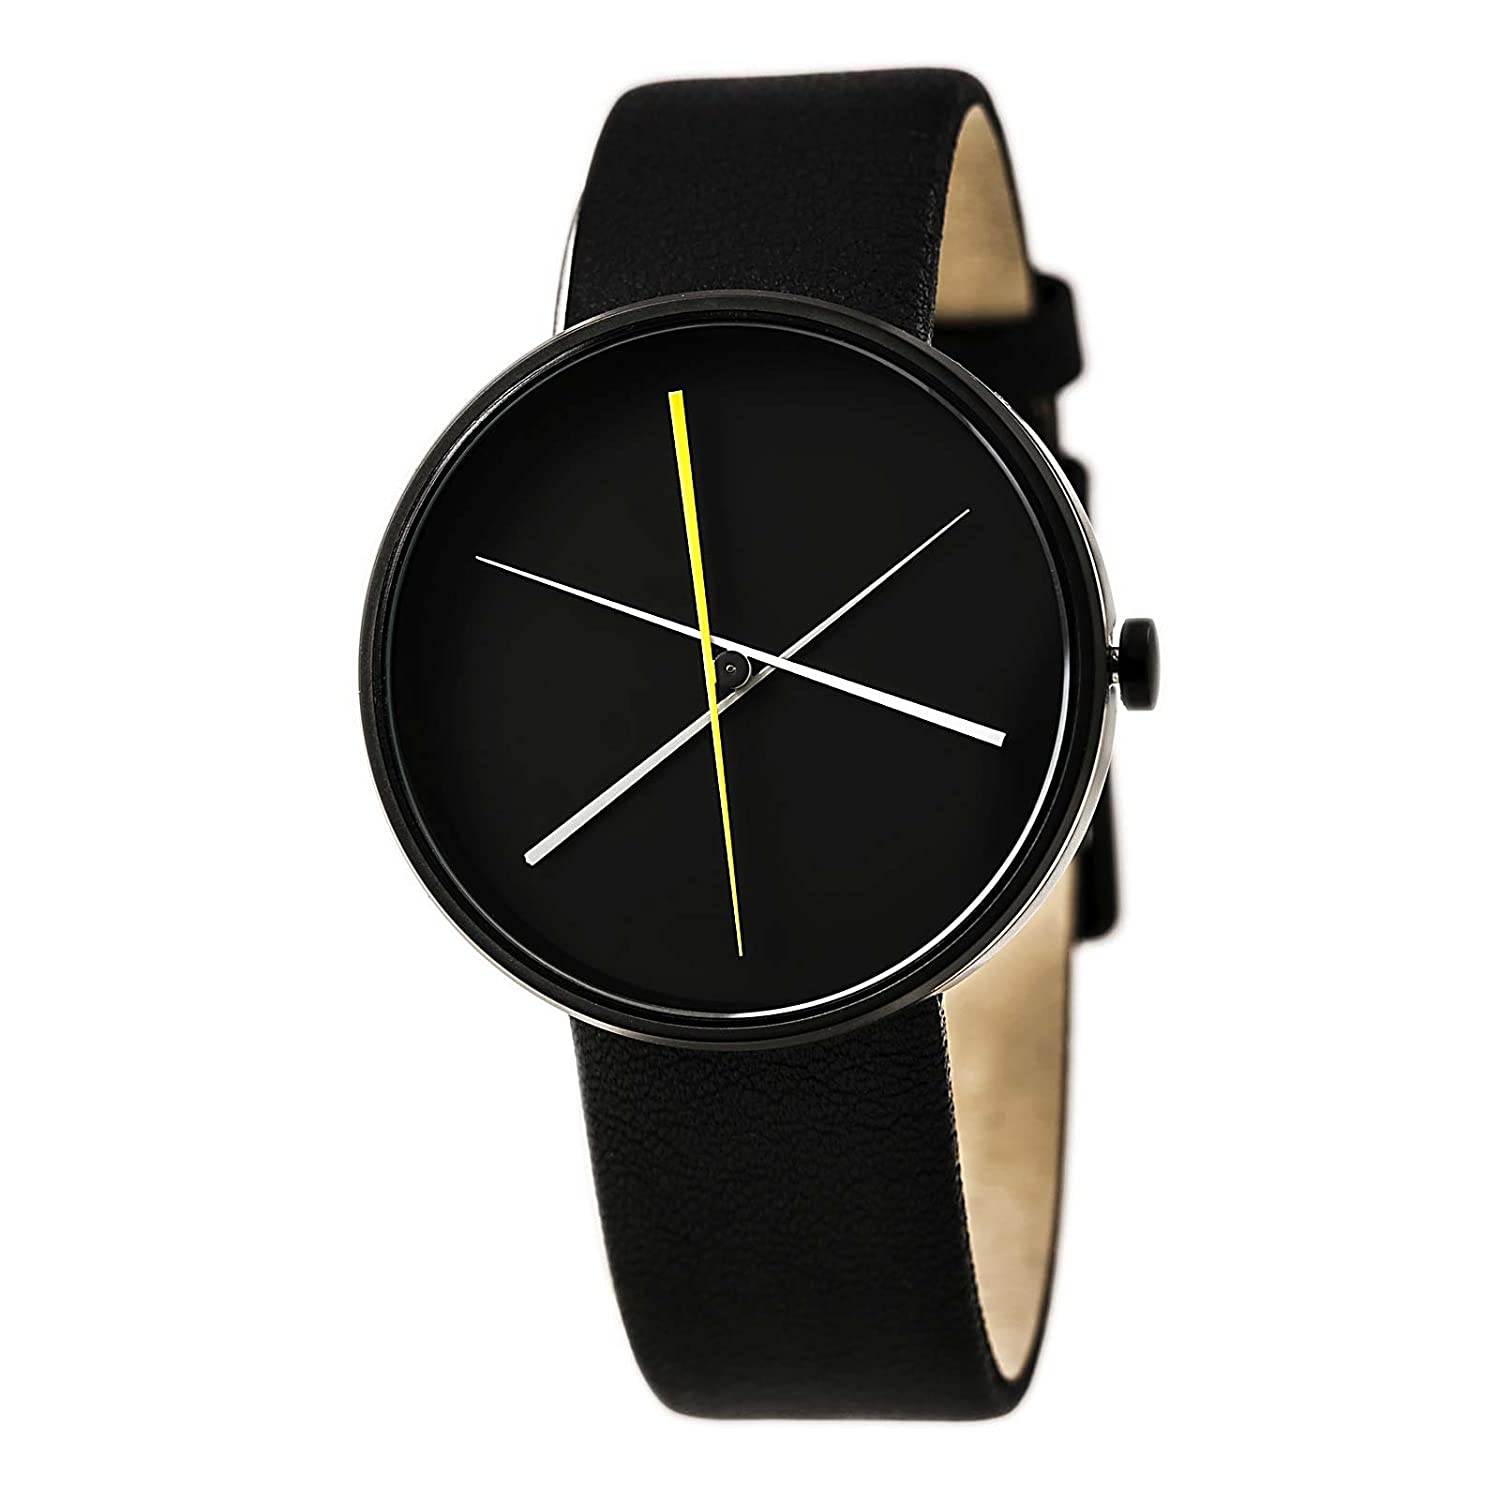 Projects Watch - Crossover - Black Leather